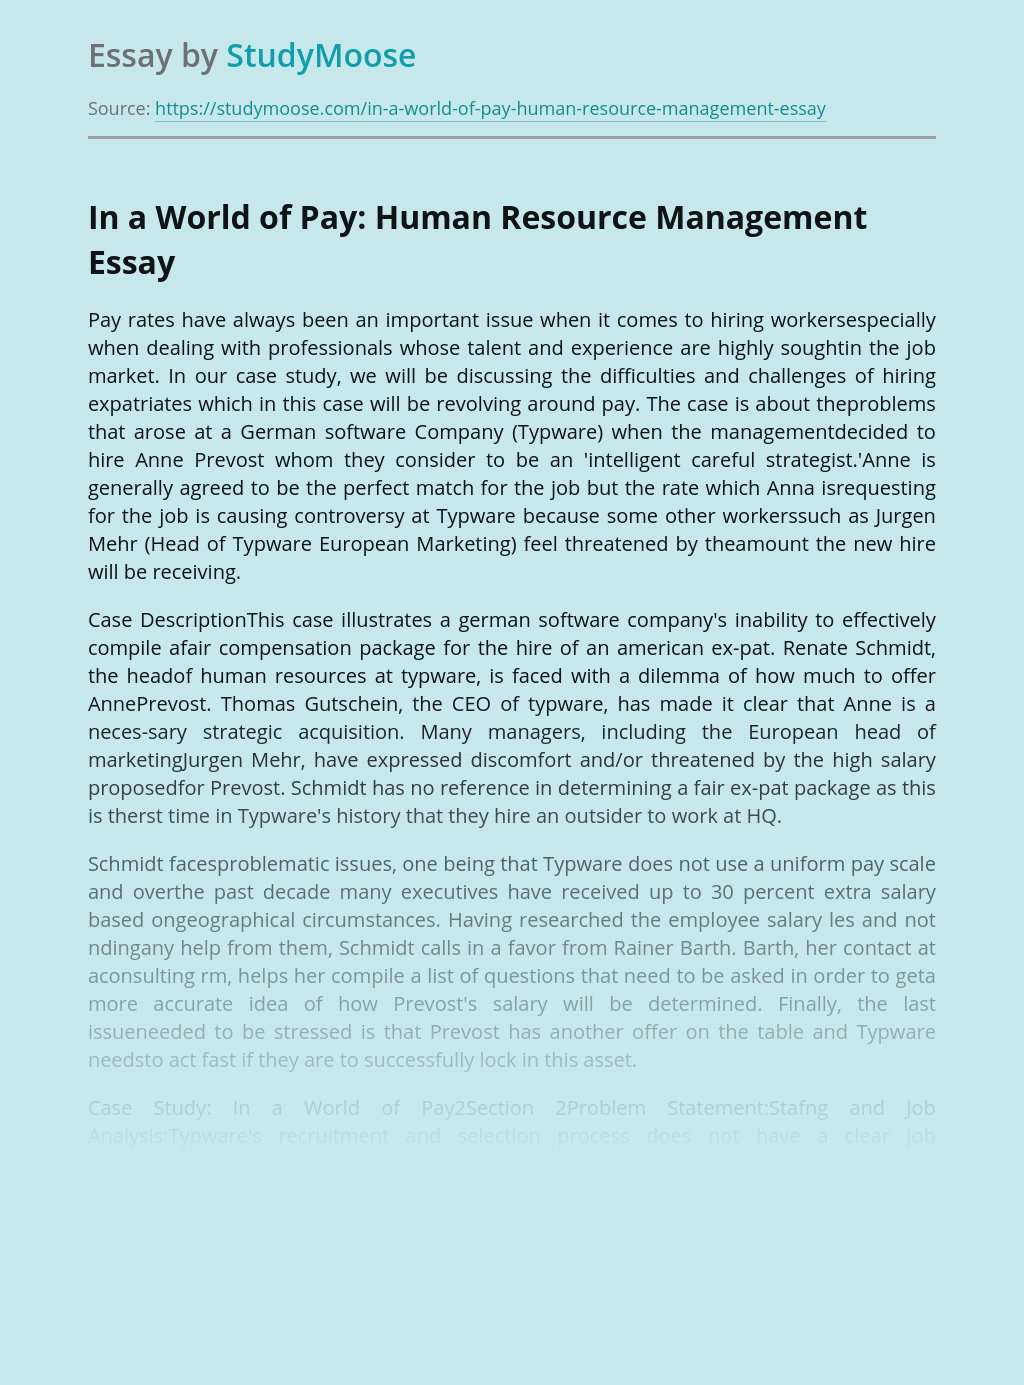 In a World of Pay: Human Resource Management